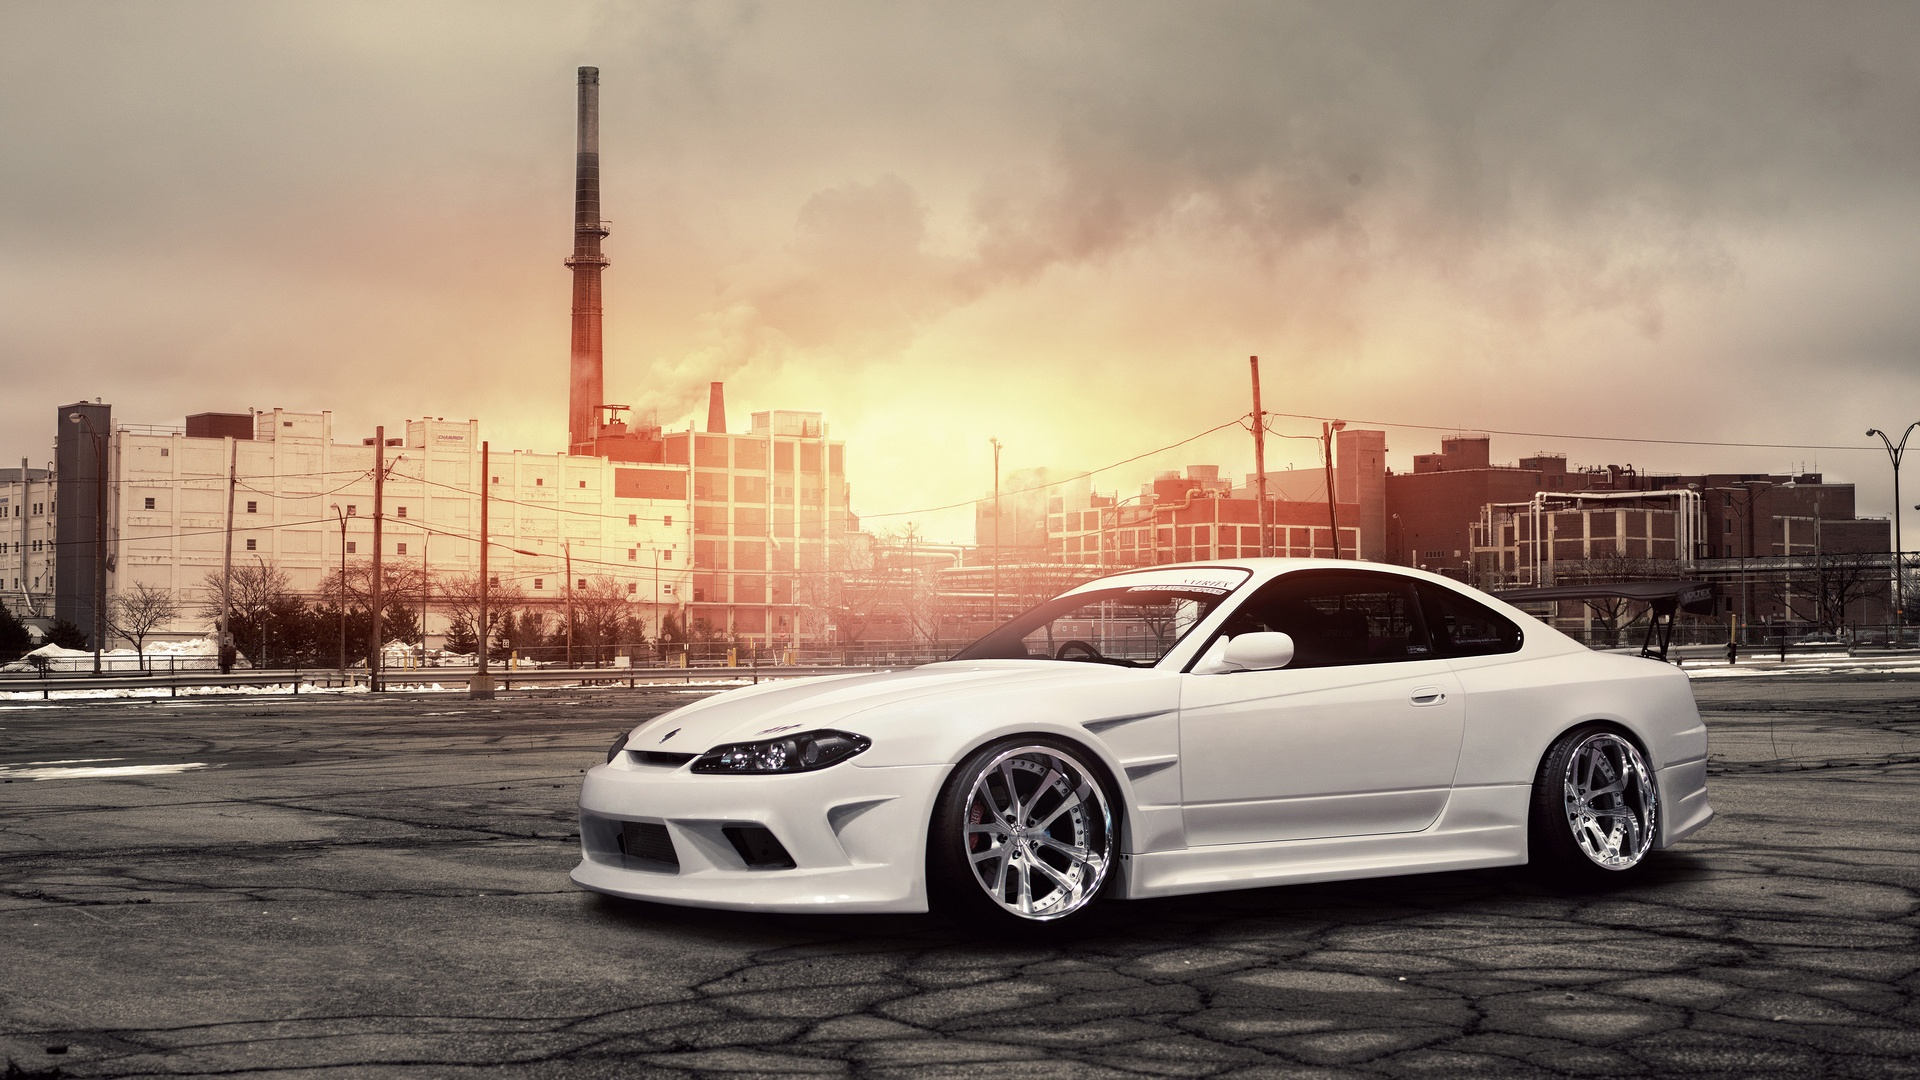 Nissan Silvia S15 White Car - High Definition Wallpapers ...